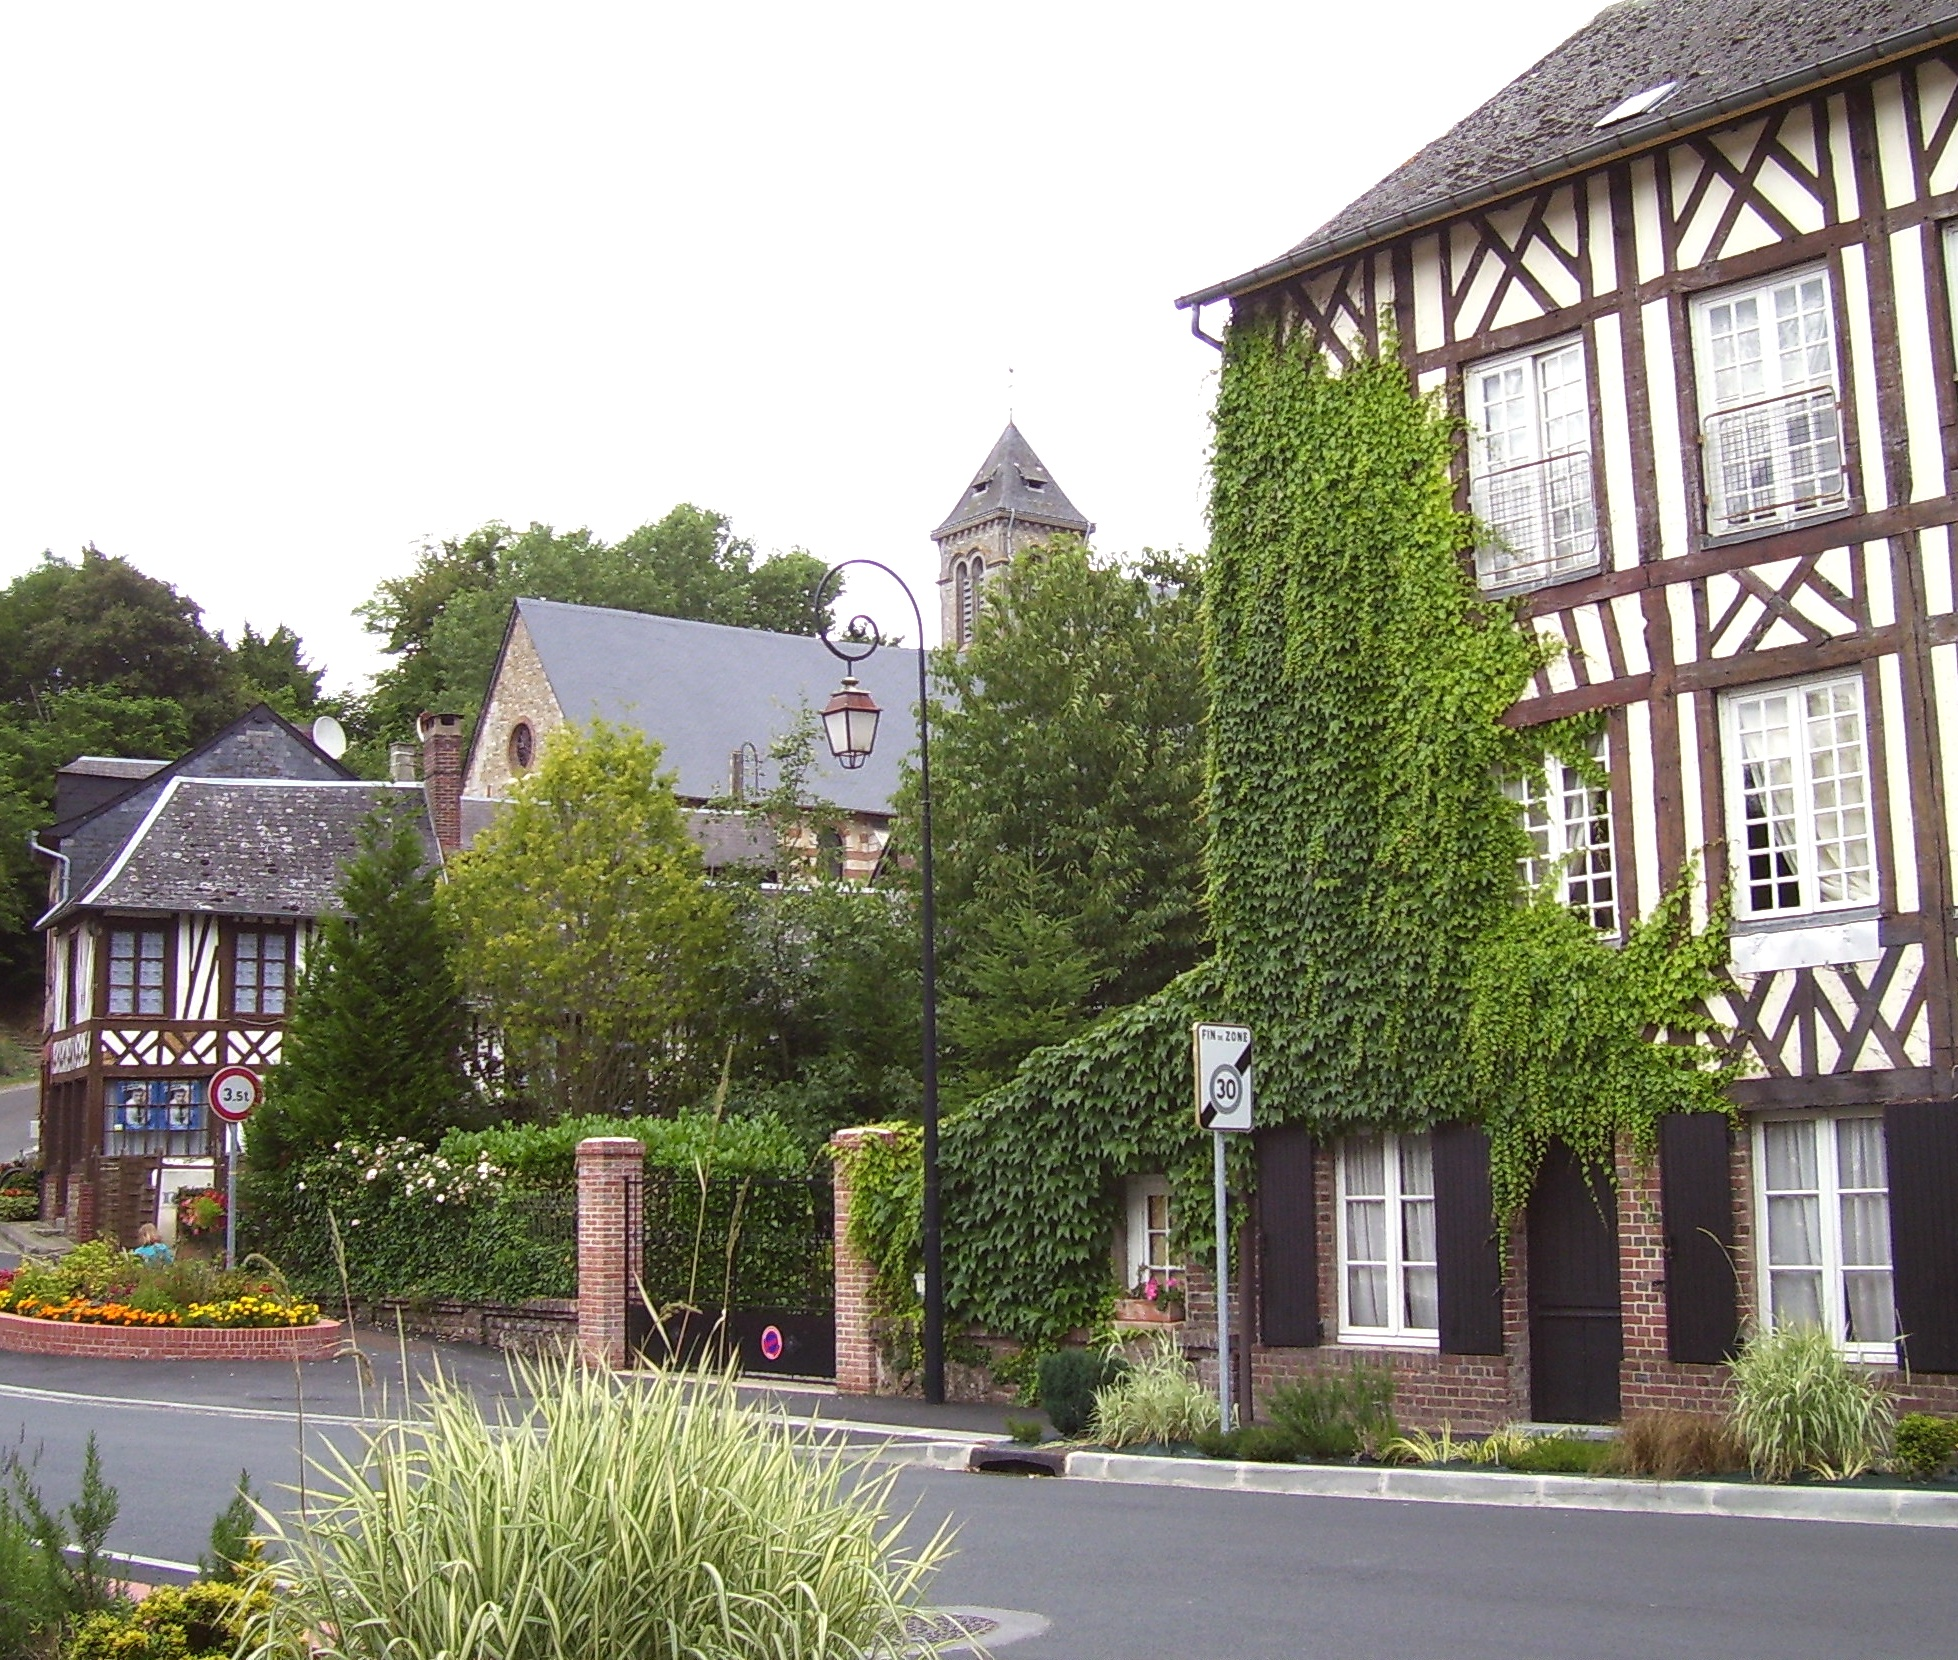 The town of Saint-Georges-du-Vièvre, own photo (on commons), public domain